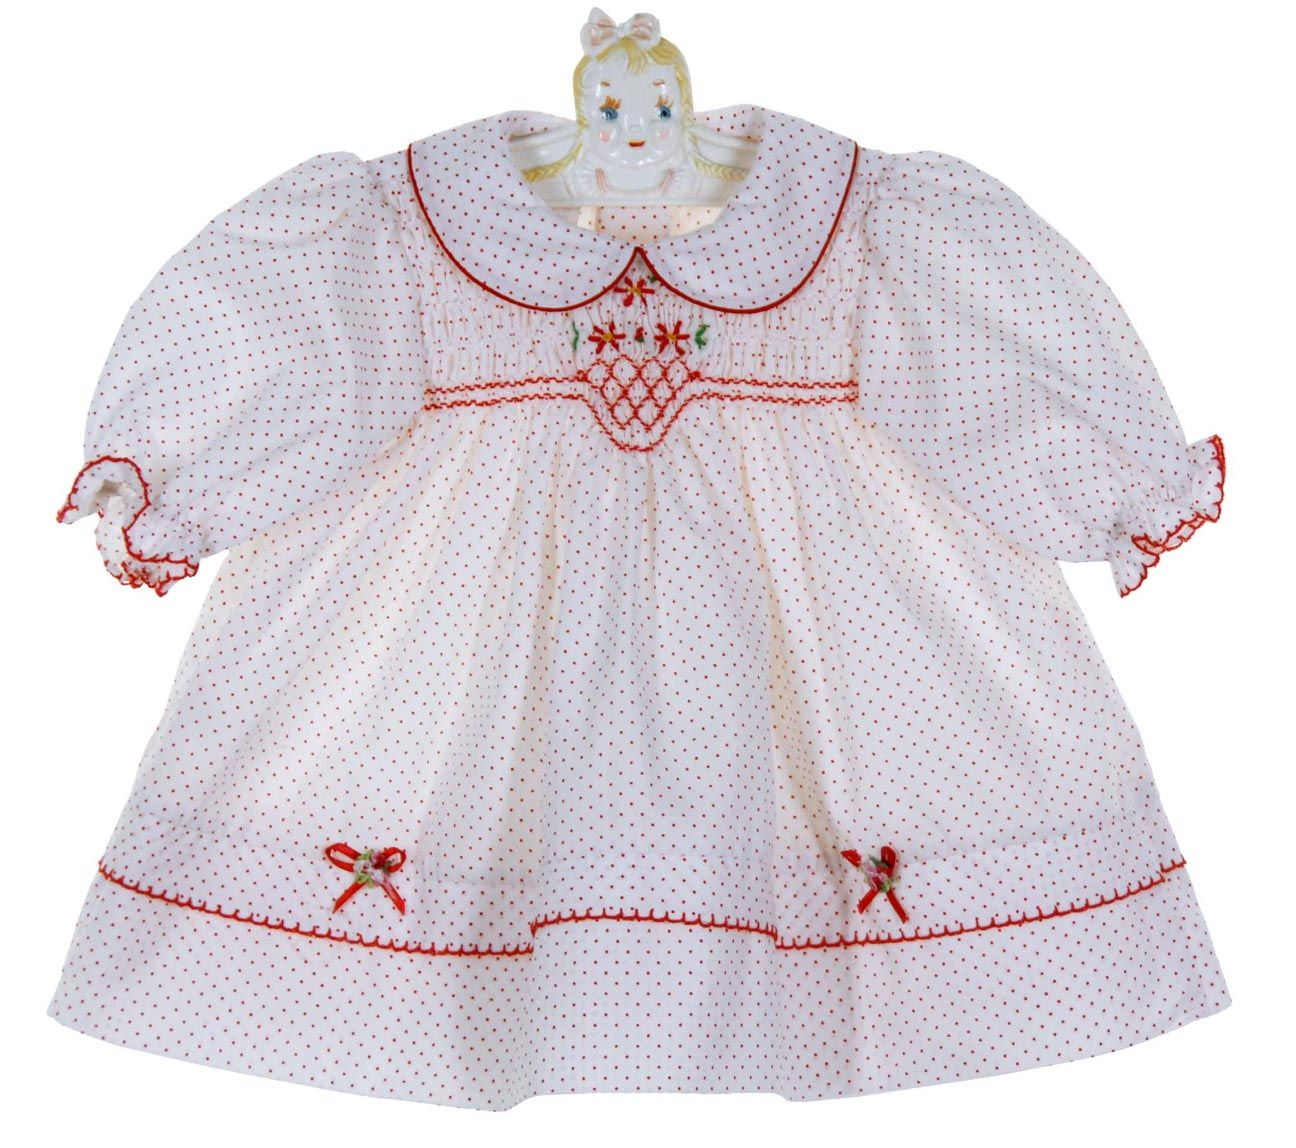 New Polly Flinders White Dotted Smocked Dress With Red Flowers 75 00 Polly Flinders Dresses Christmas Dress Baby Kids Christmas Outfits [ 1148 x 1296 Pixel ]